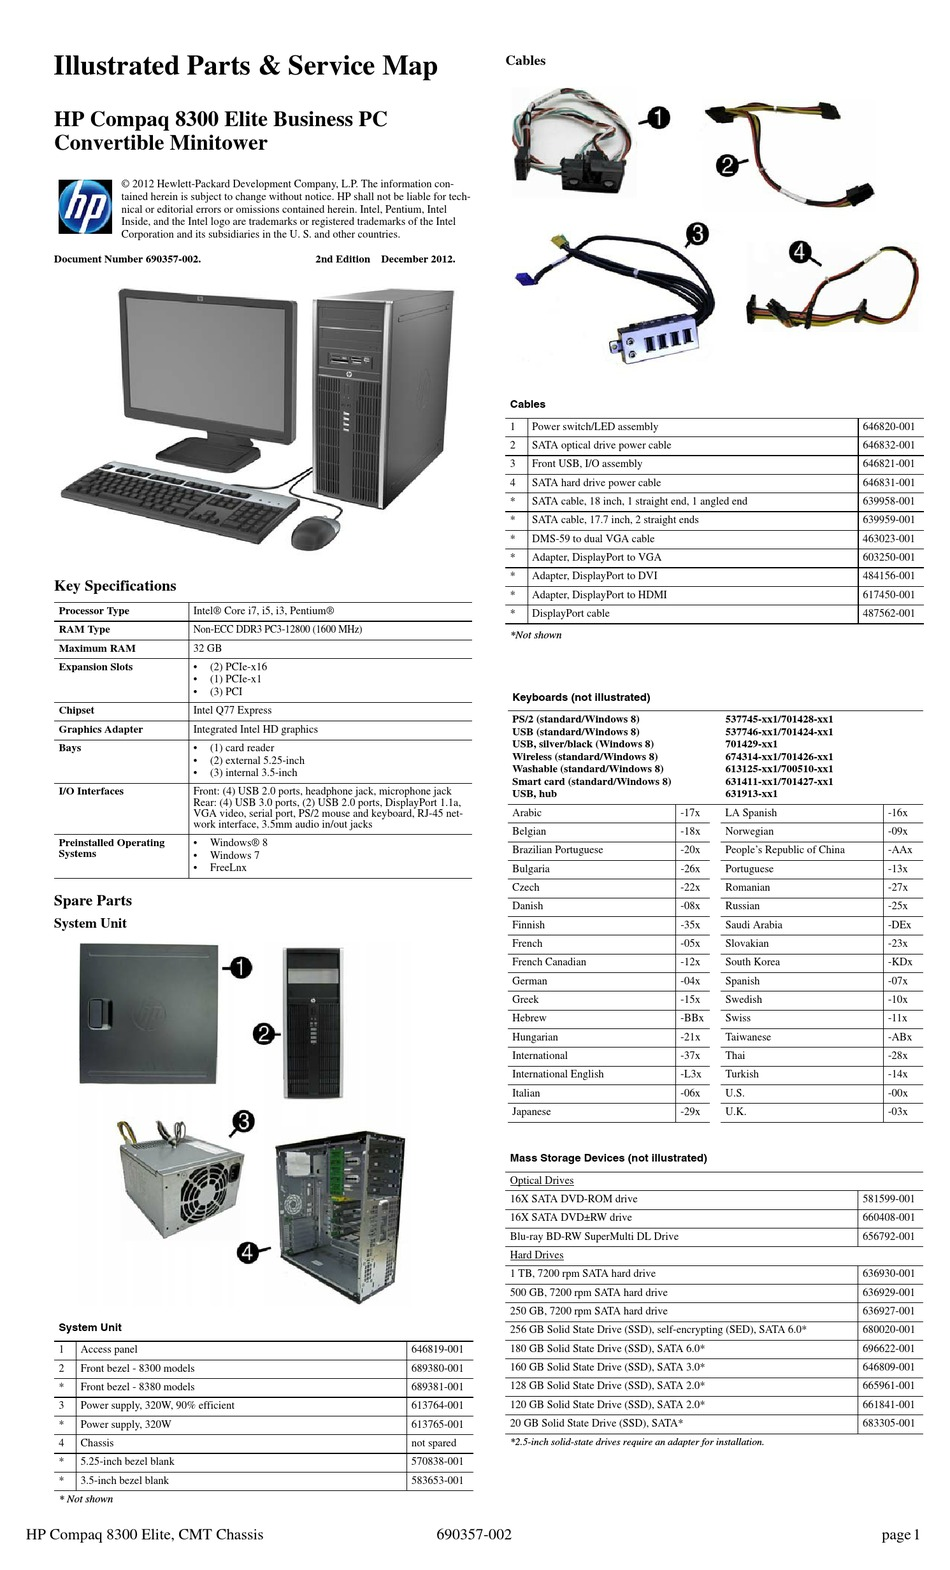 HP COMPAQ 8300 ELITE ILLUSTRATED PARTS & SERVICE MAP Pdf